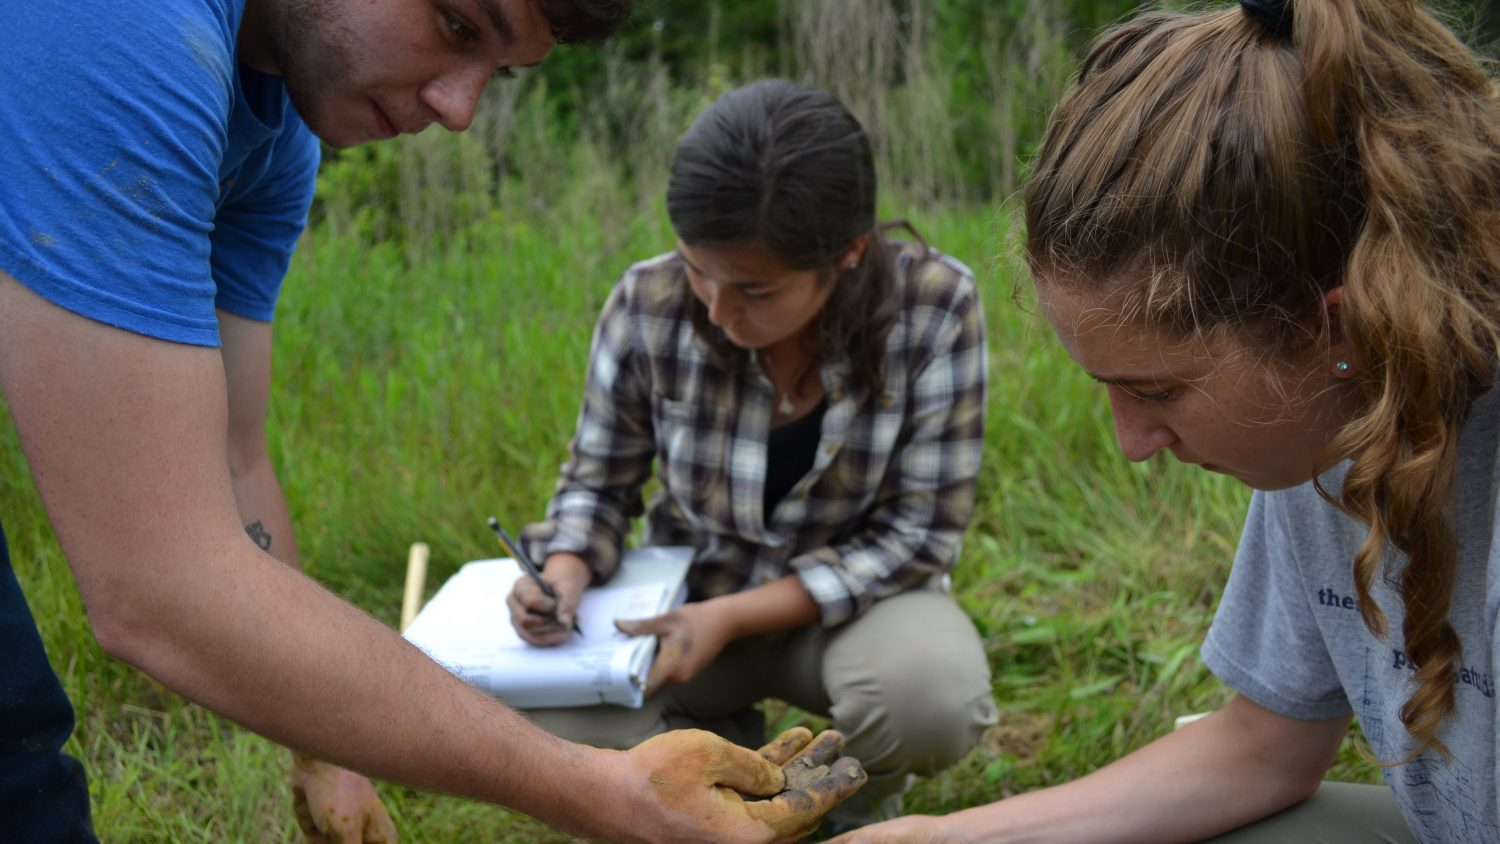 Three NC State College of Agriculture and Life Sciences students analyze soil in the field.